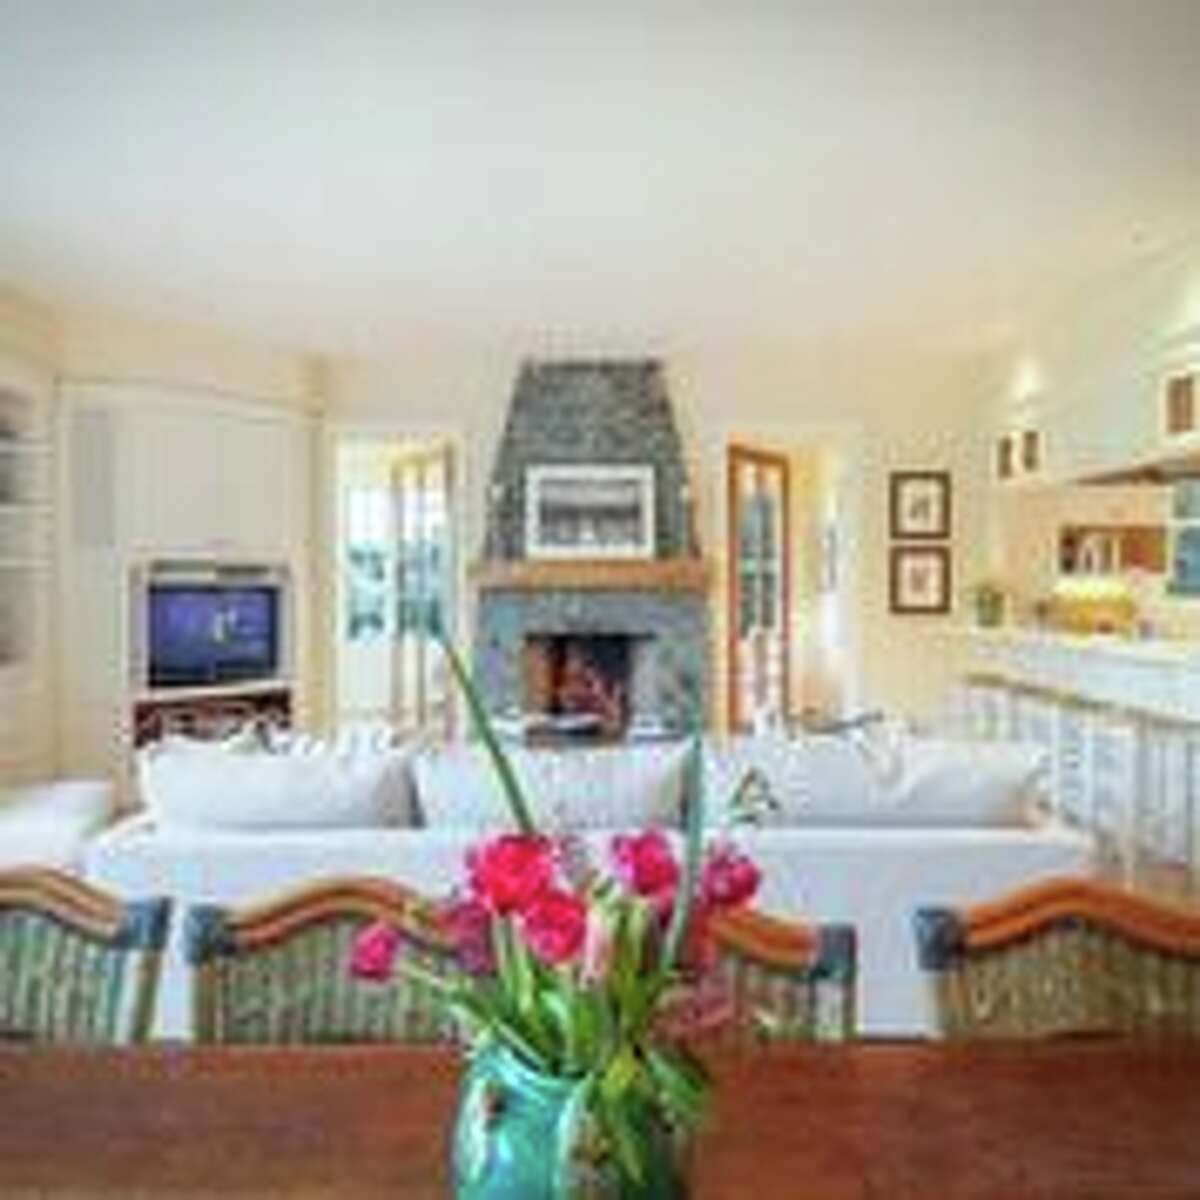 The perfect Bay Area vacation home? A delightful, sunny Bolinas home set on 10 pastoral acres and about a mile from the sea is on the market for $5.295 million.